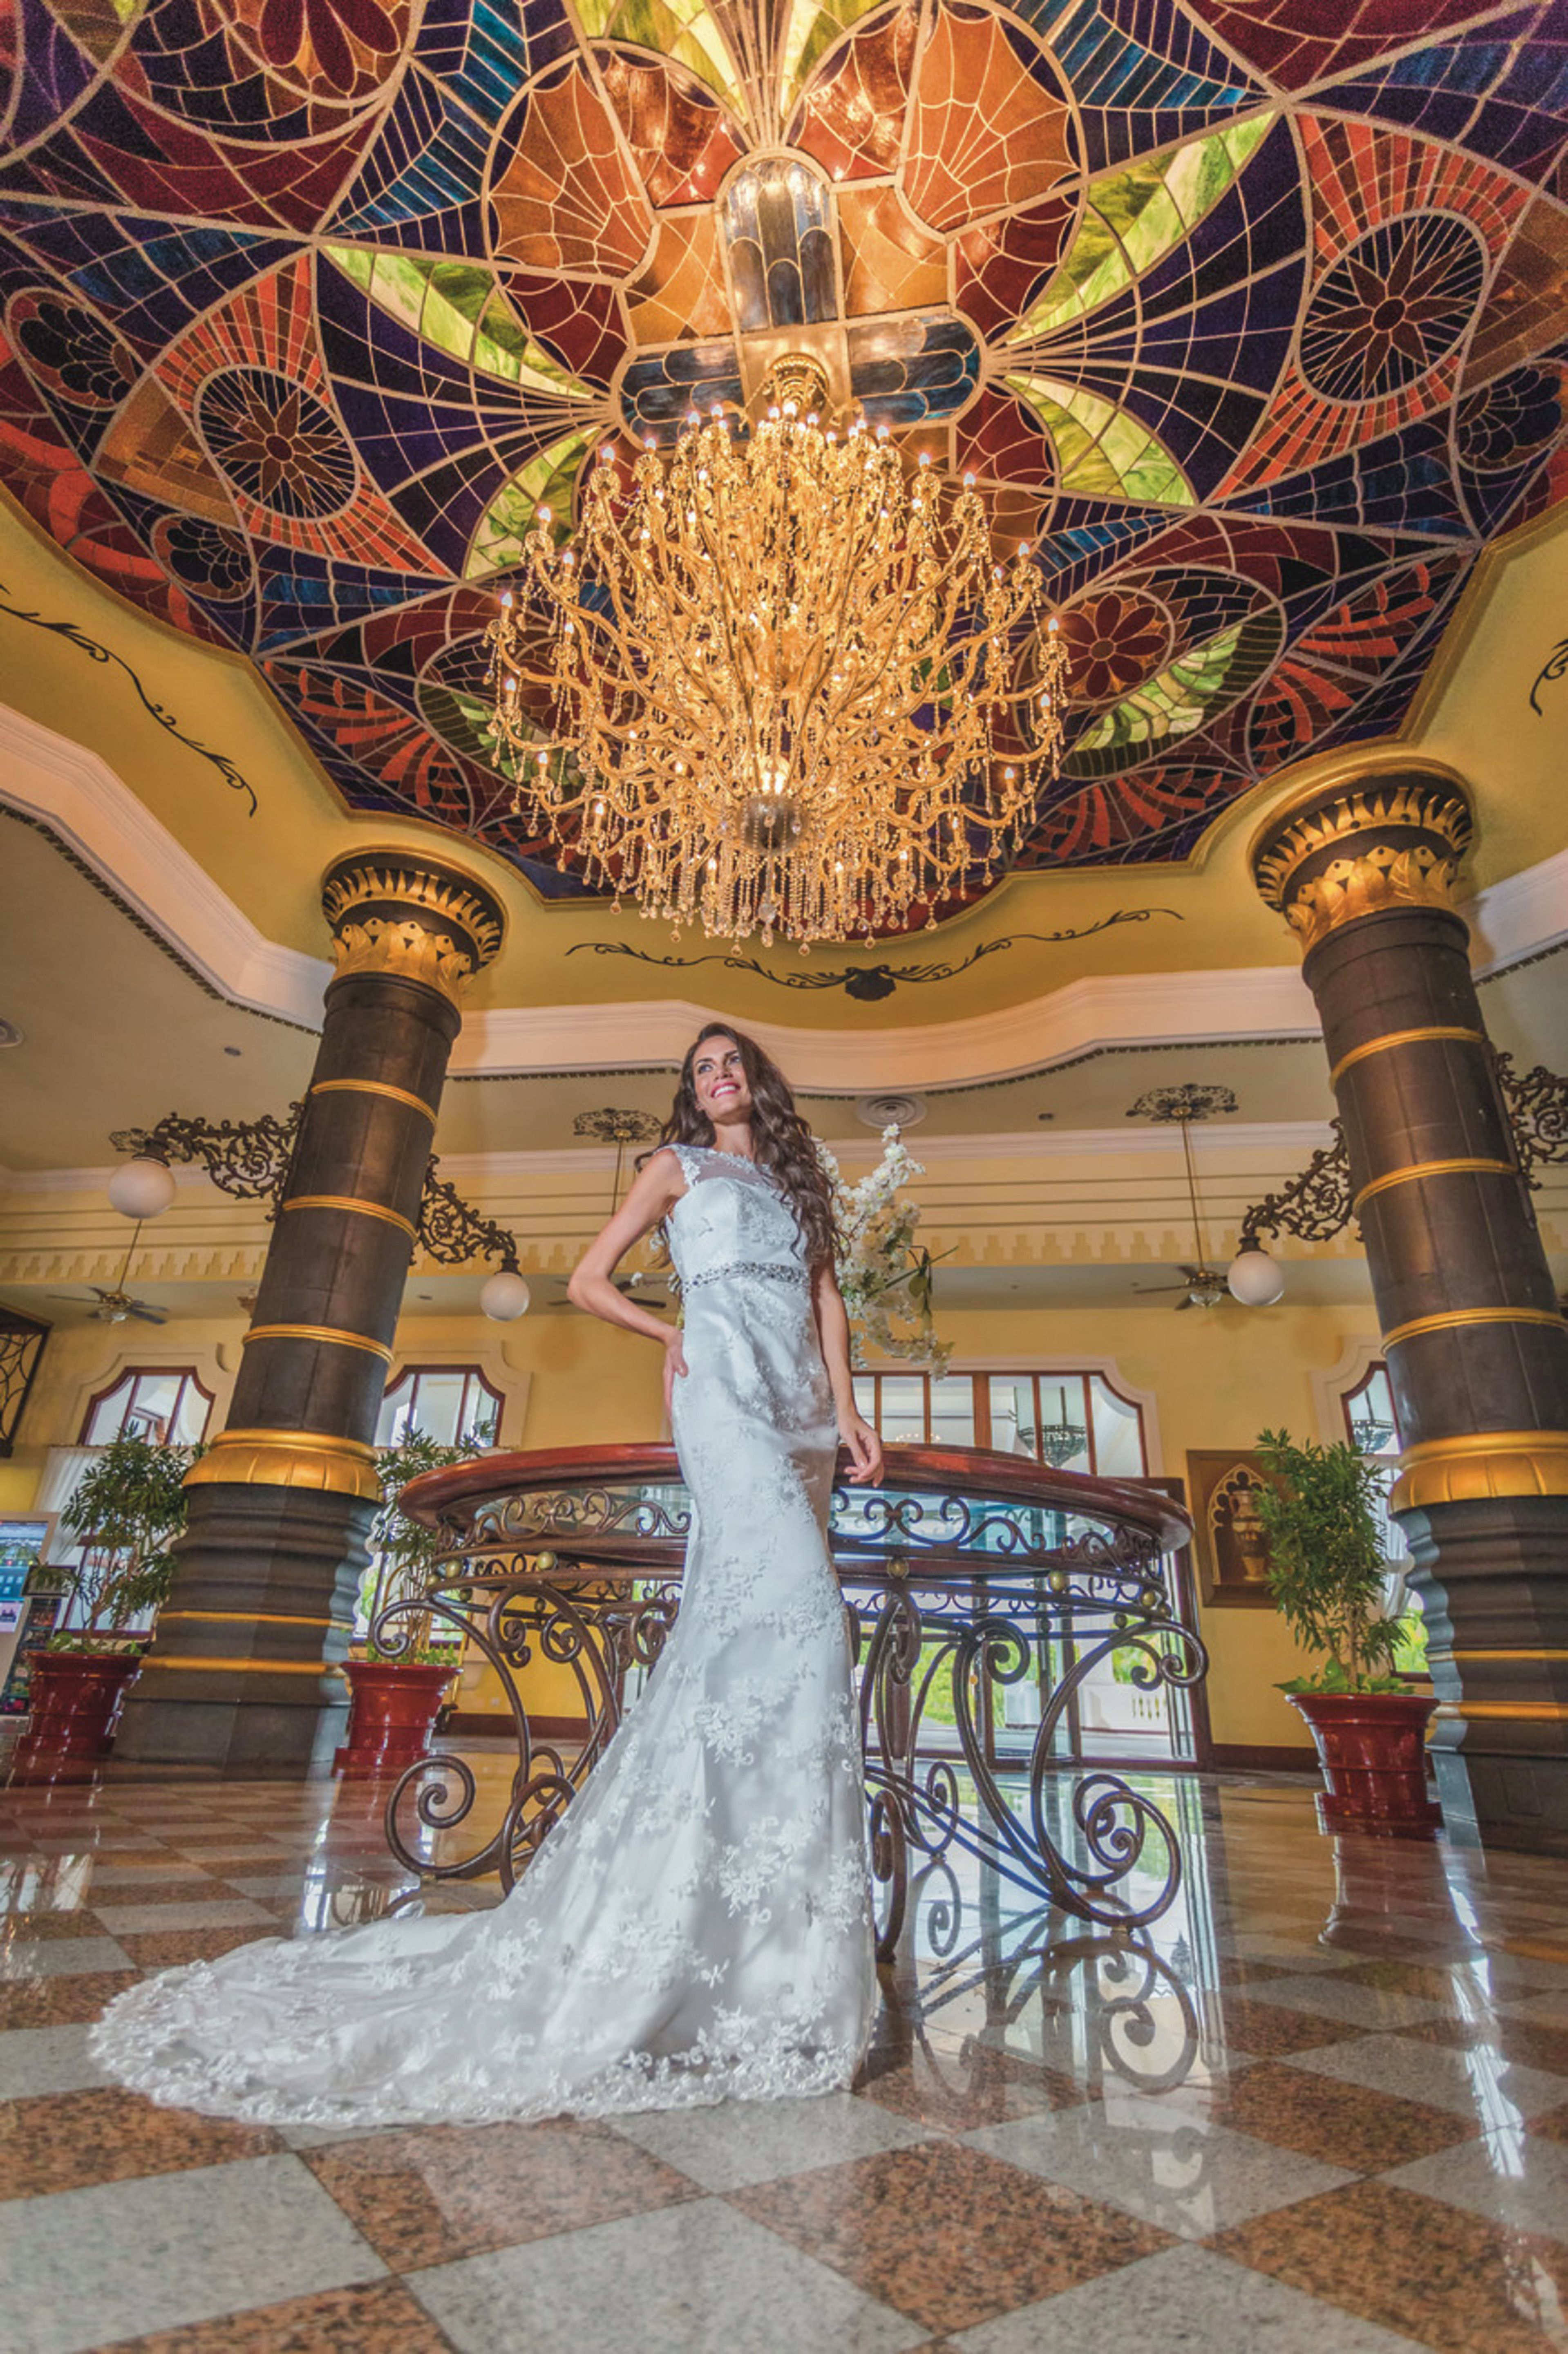 Riu Palace Punta Cana - bride picture idea - chandelier - All Inclusive hotel in Punta Cana, Dominican Republic - Weddings by RIU